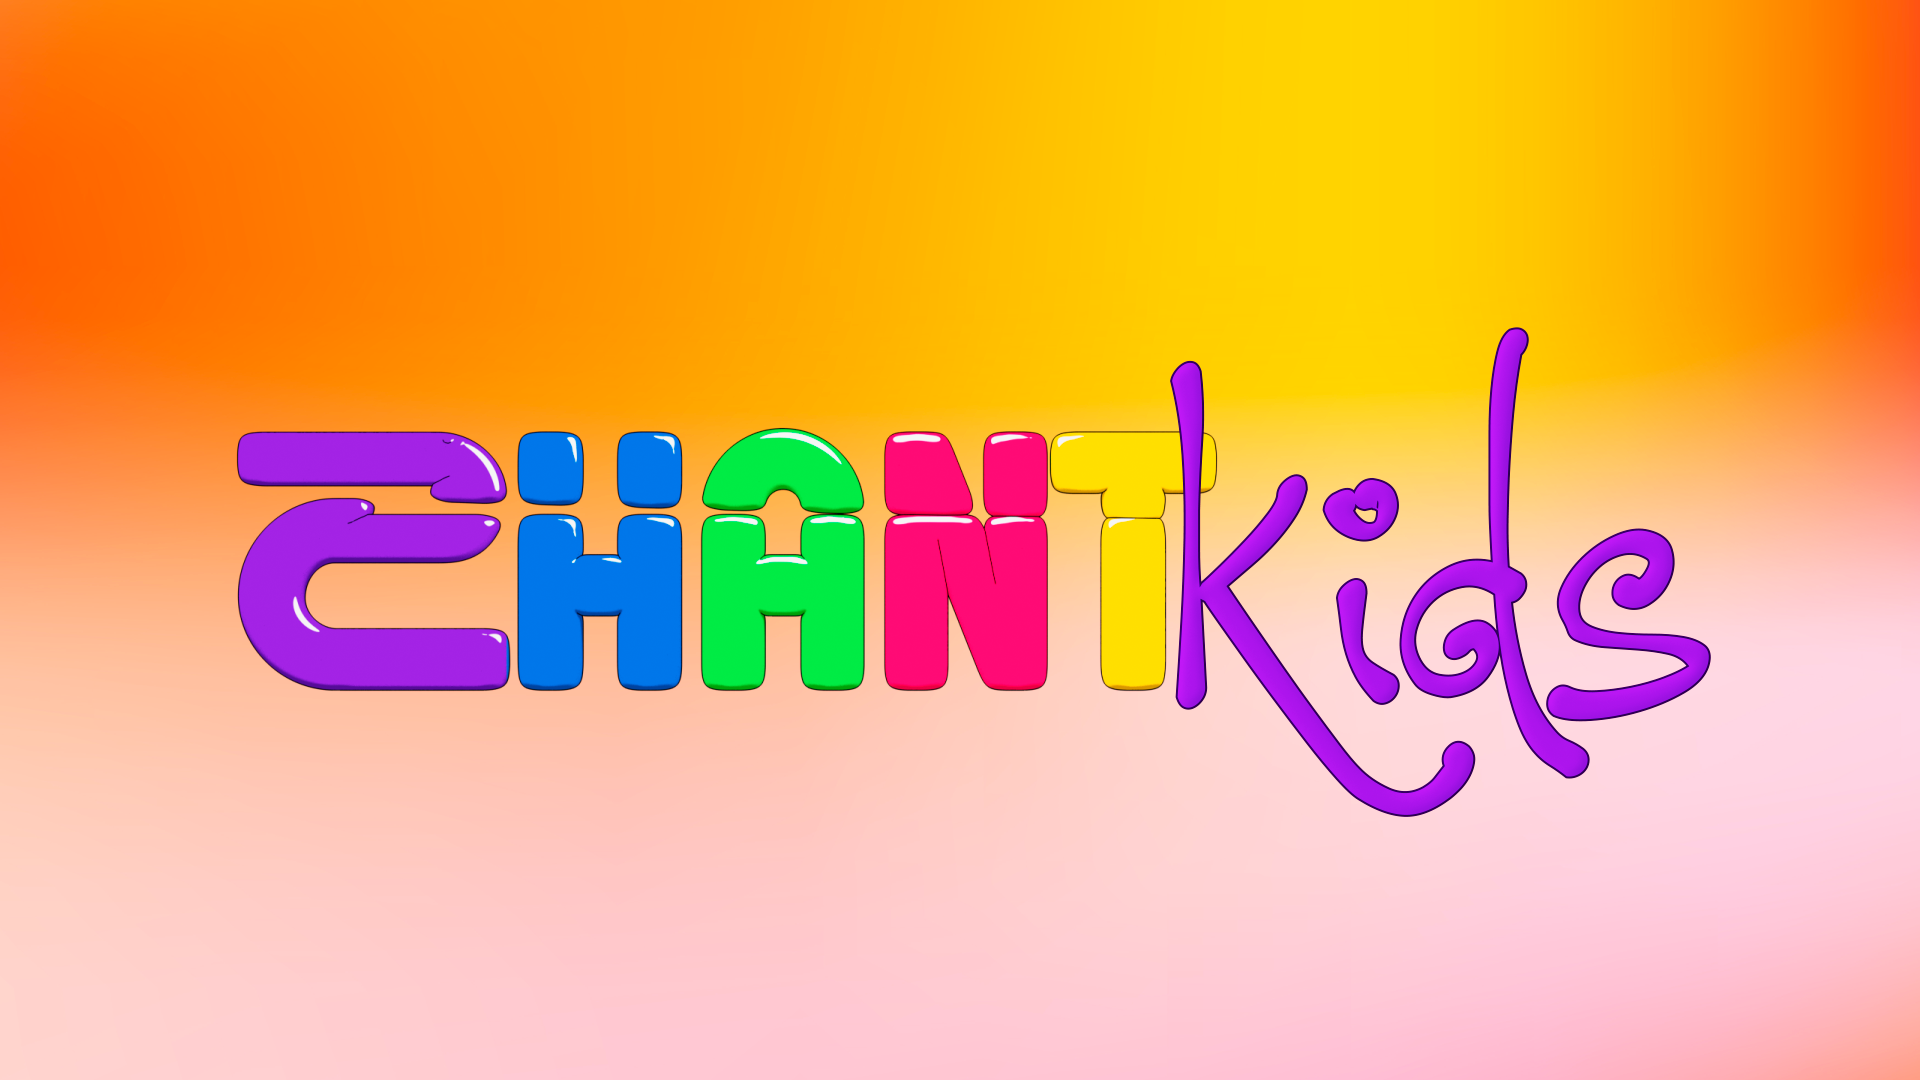 Shant Kids HD